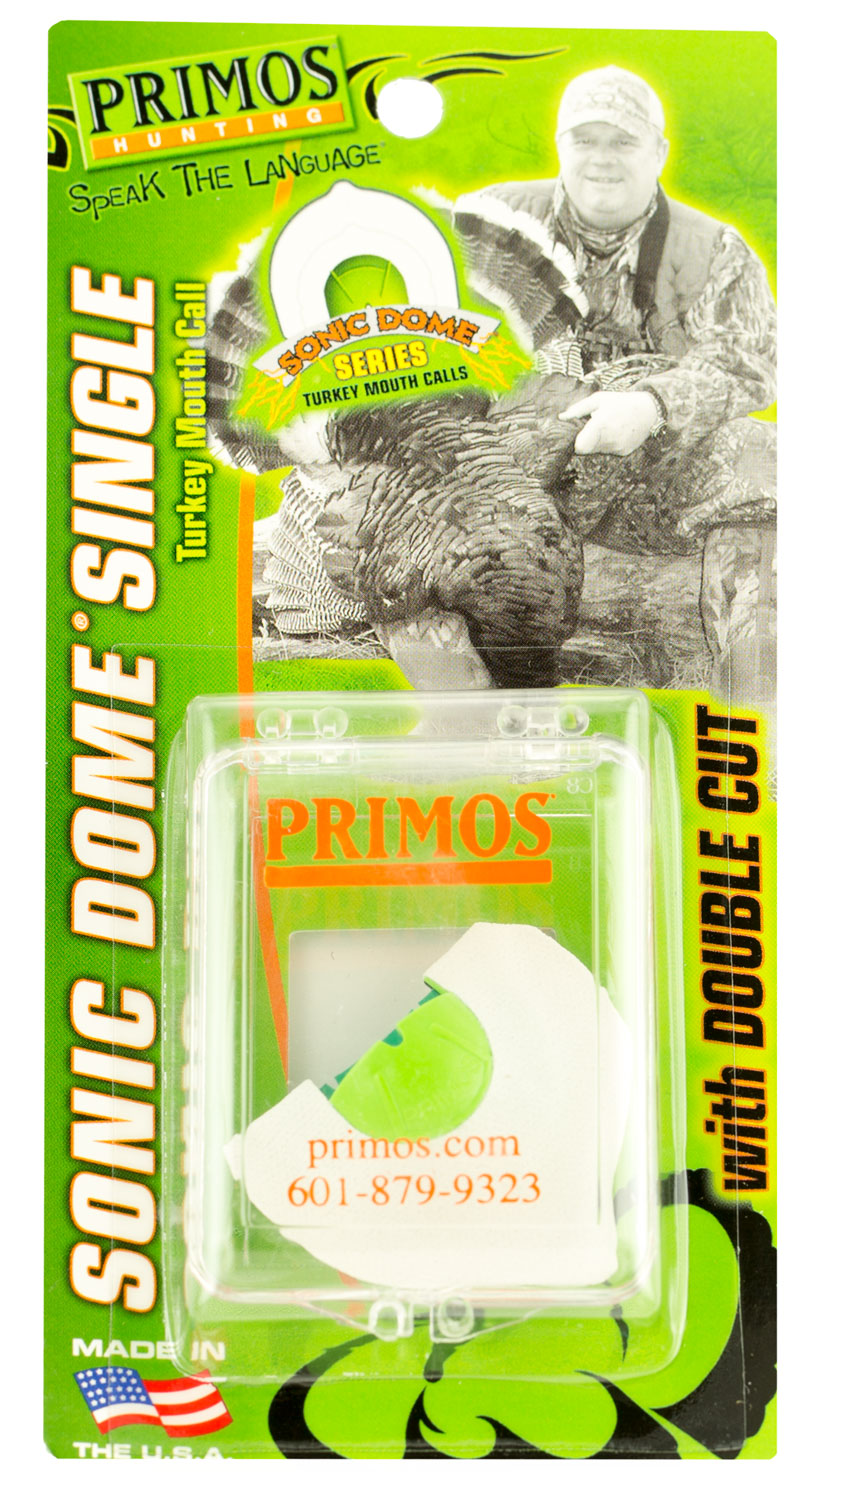 Primos PS1176 Sonic Dome Single with Double Cut Turkey Mouth Call